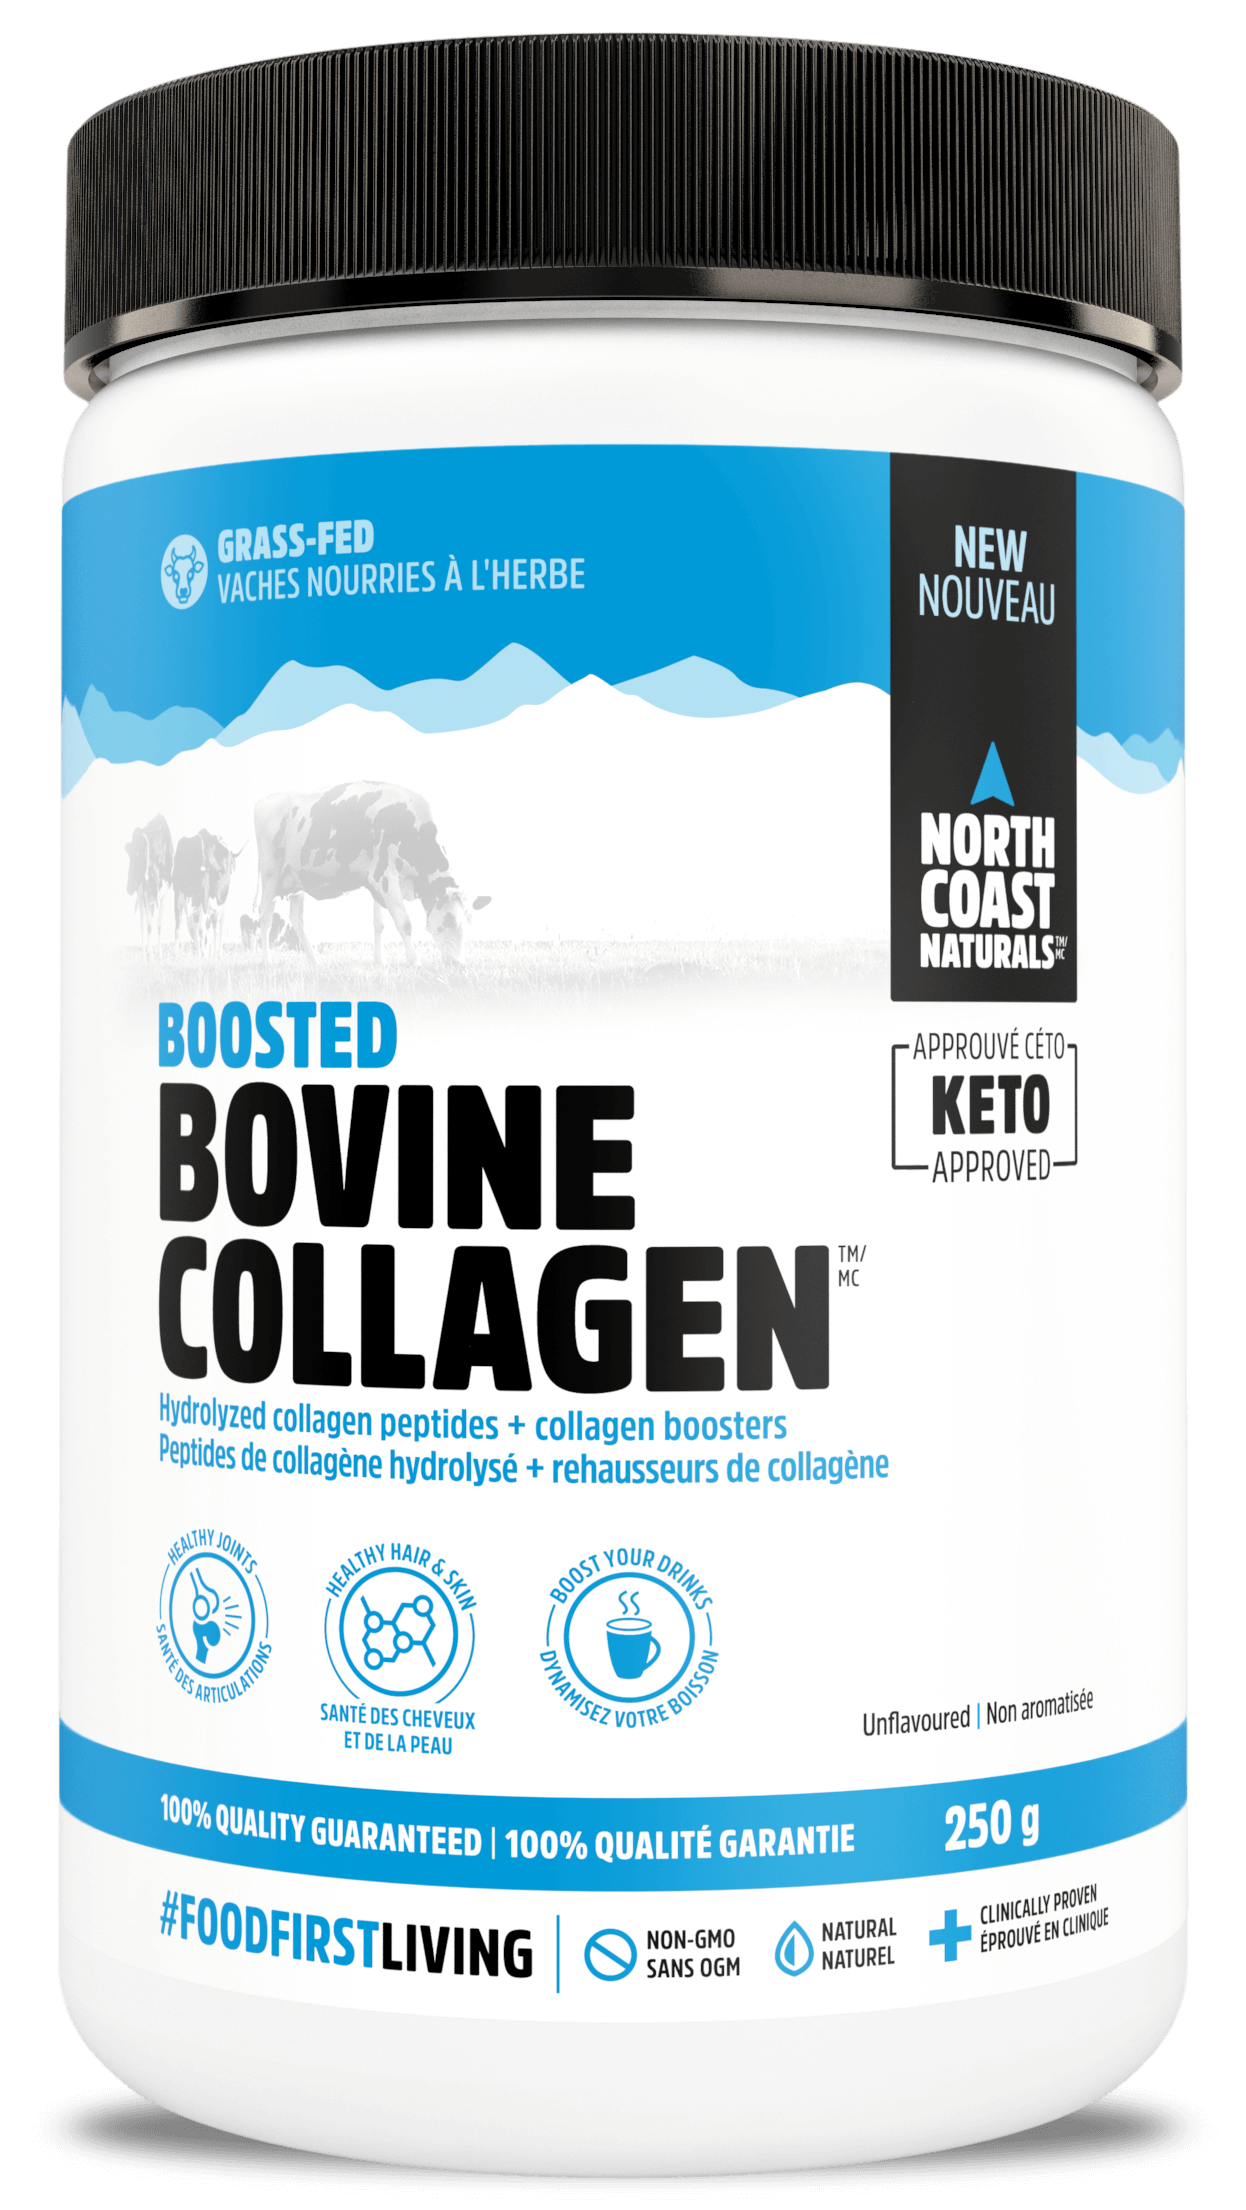 Boosted Bovine Collagen